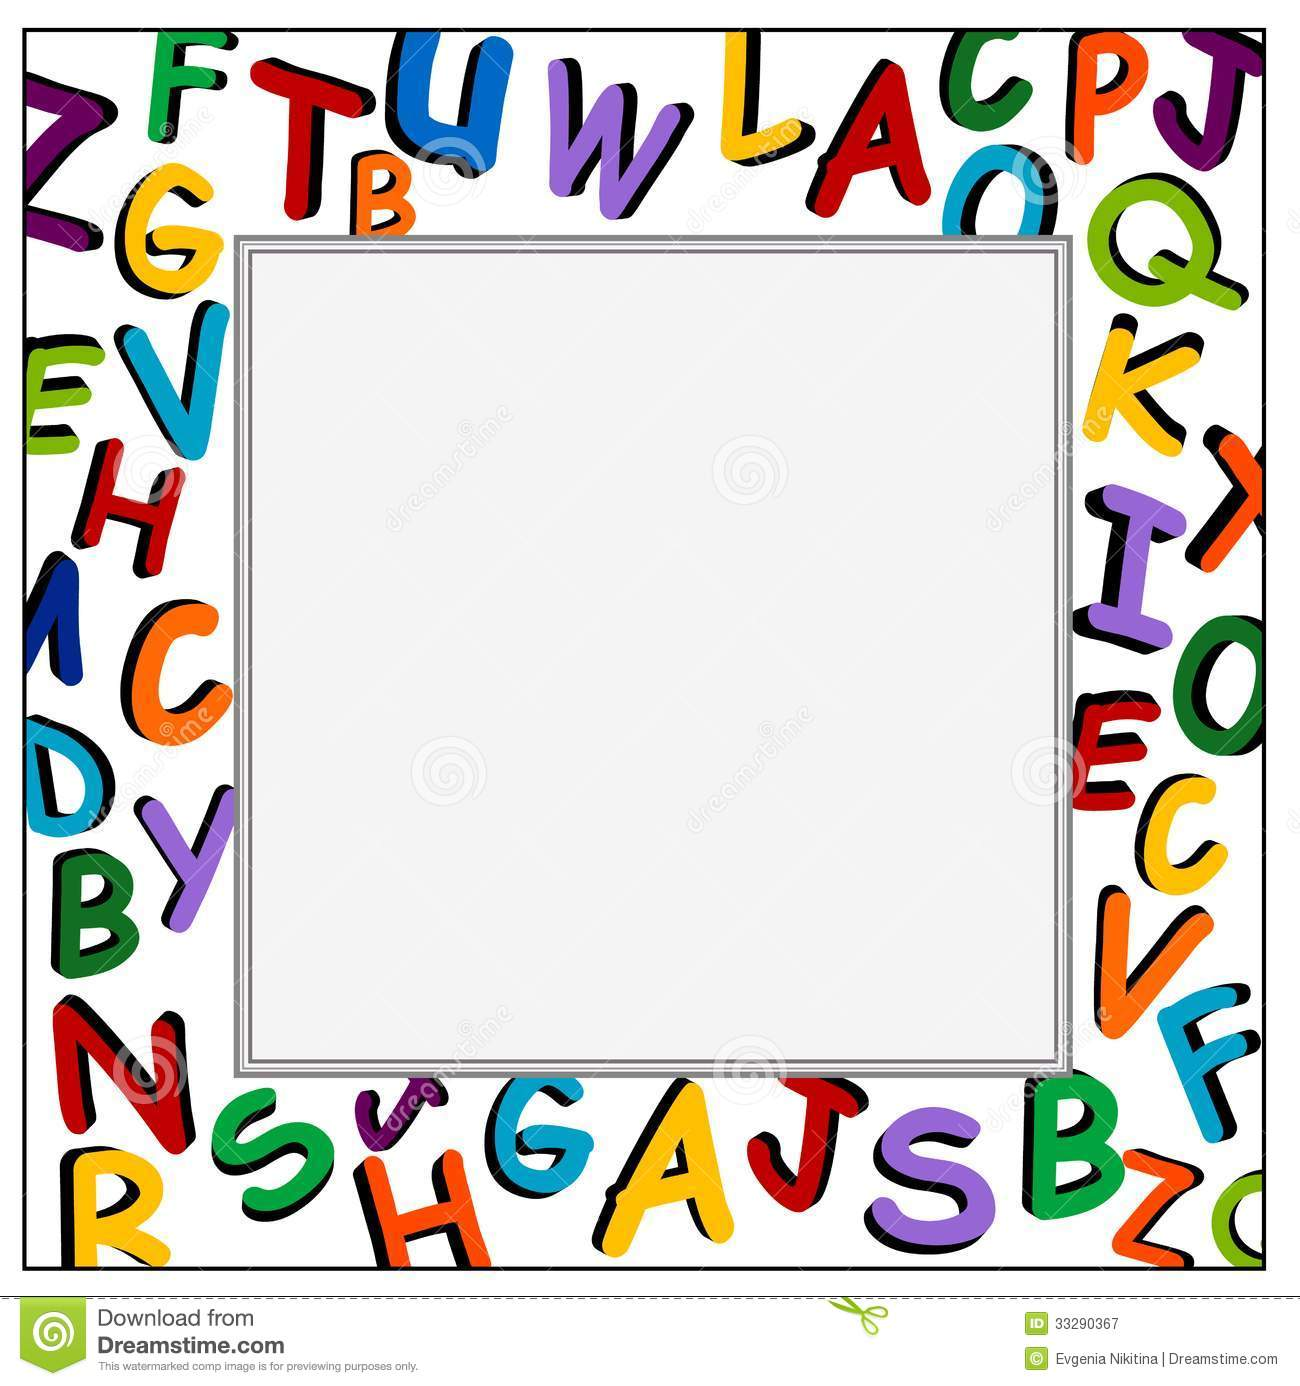 Educational Borders And Frames - ClipArt Best